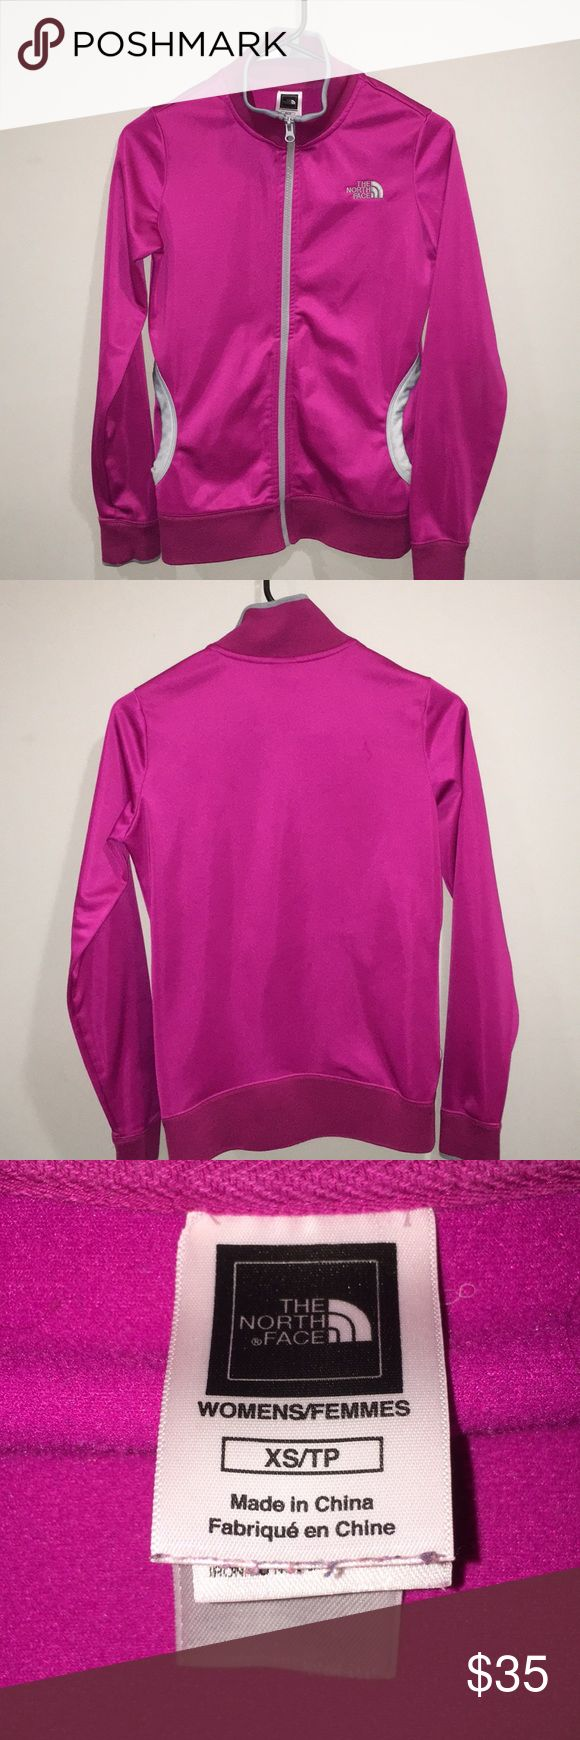 LADIES THE NORTH FACE FULL ZIP JACKET EXCELLENT USED CONDITION The North Face Jackets & Coats